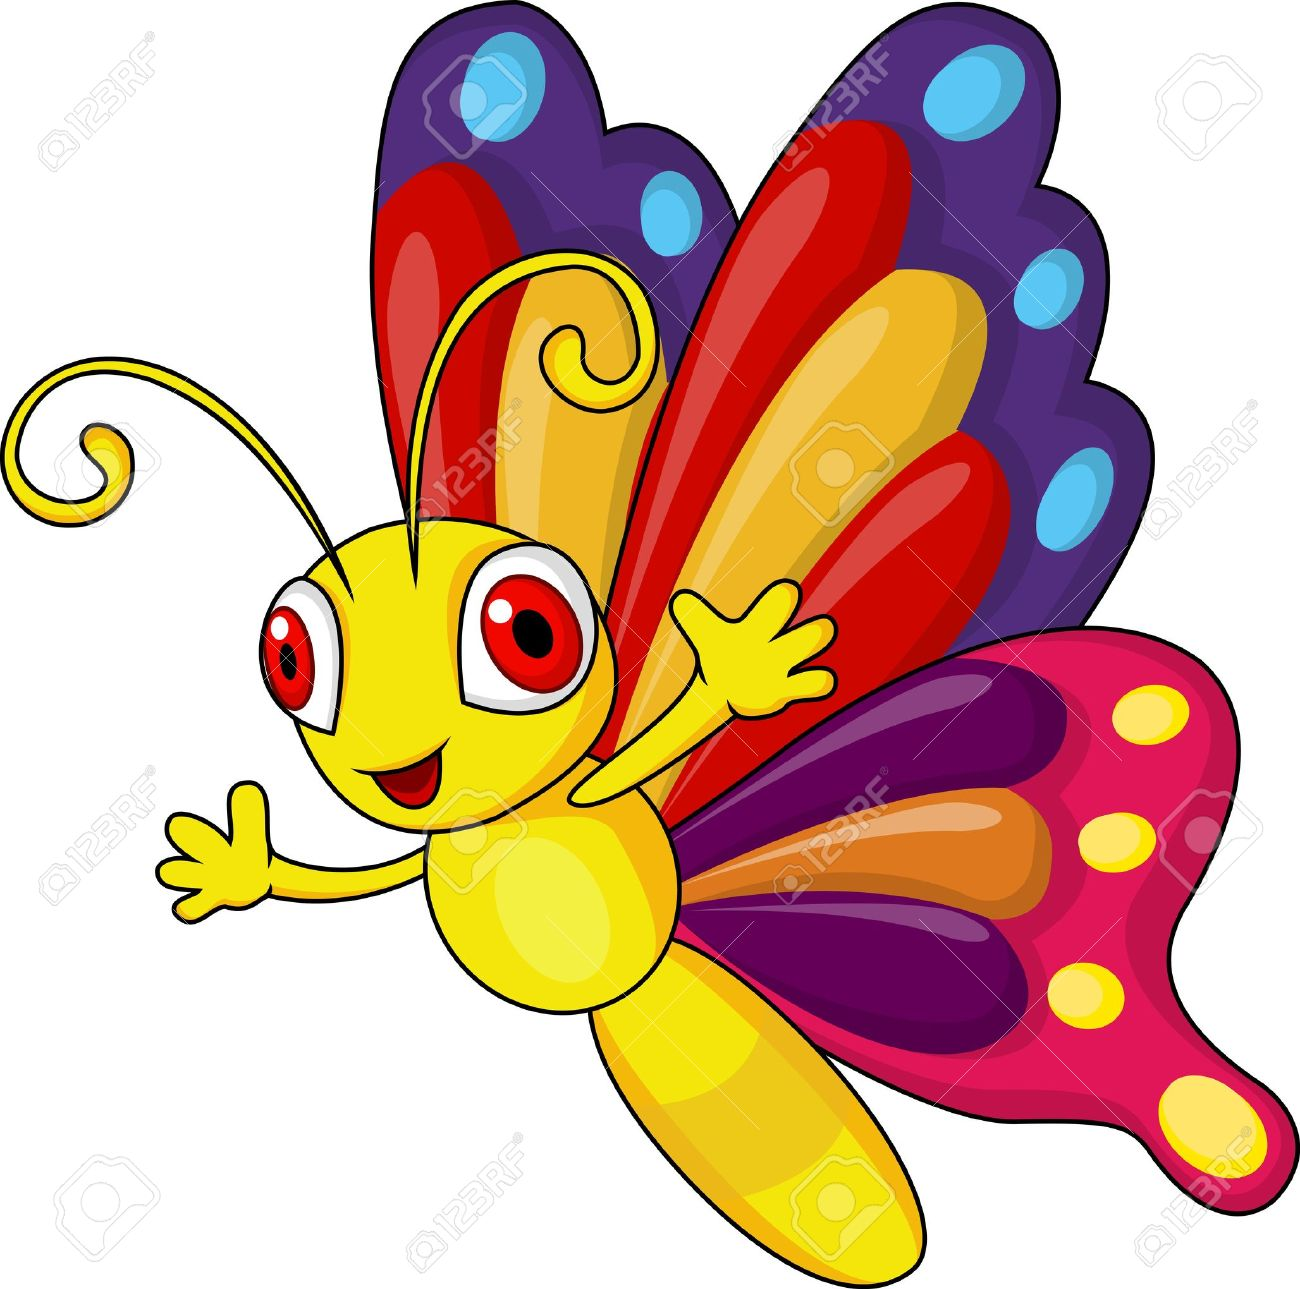 Worksheet Butterfly Beetle 3031 butterfly beetle cliparts stock vector and royalty free funny cartoon